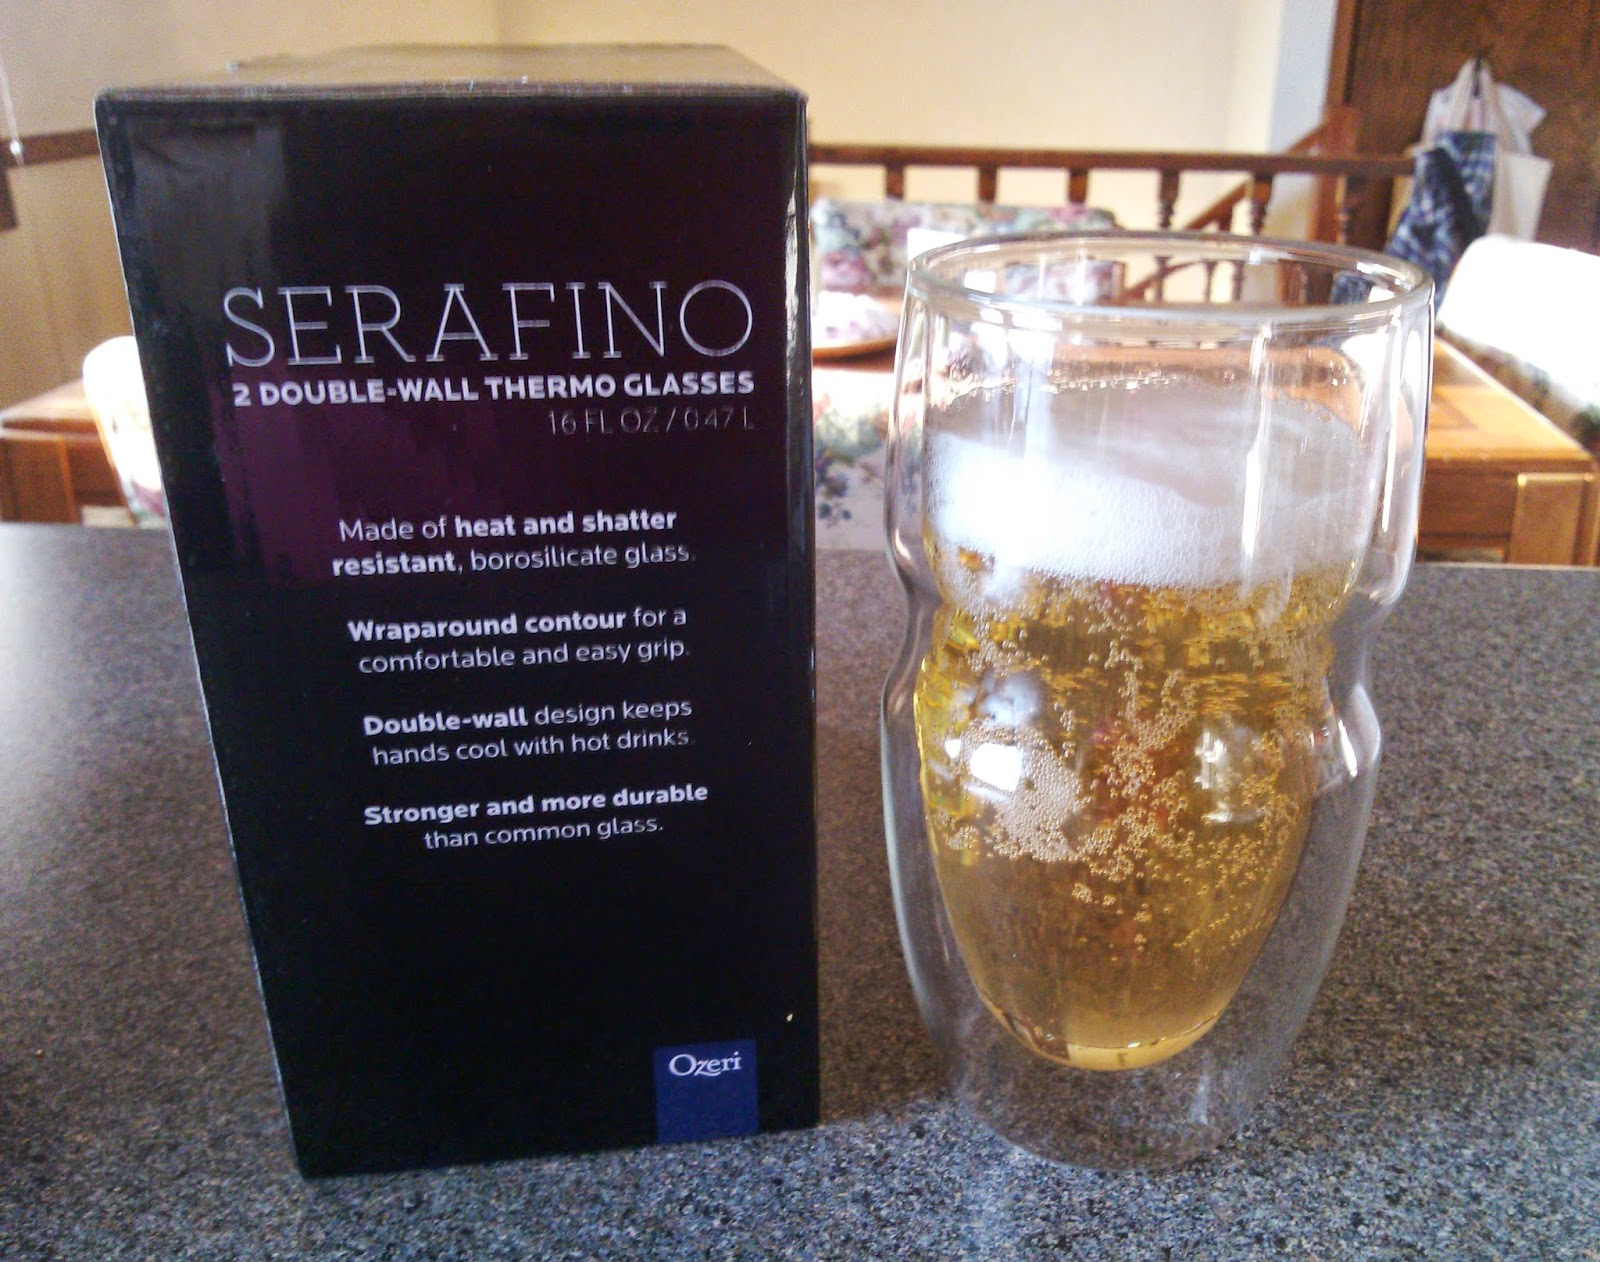 Ozeri Serafino Double Wall Insulated Drinking Glasses Review